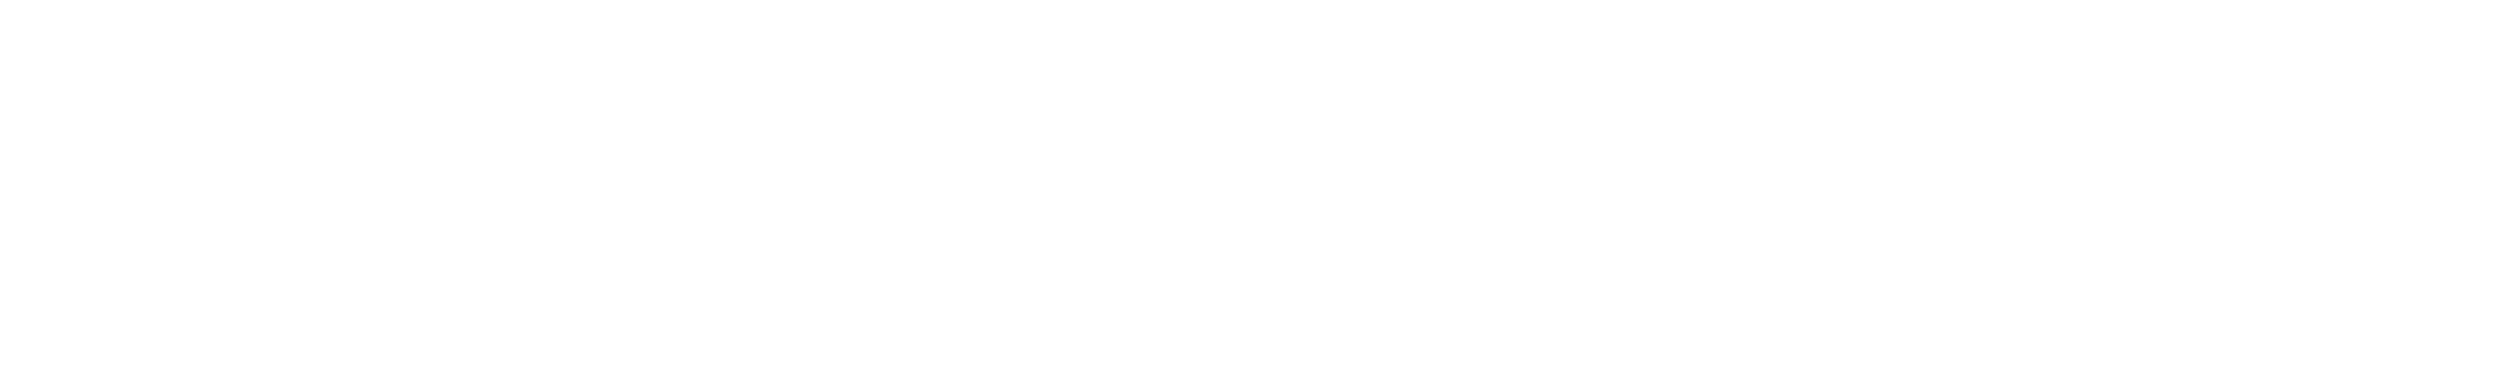 Quote_4.PNG